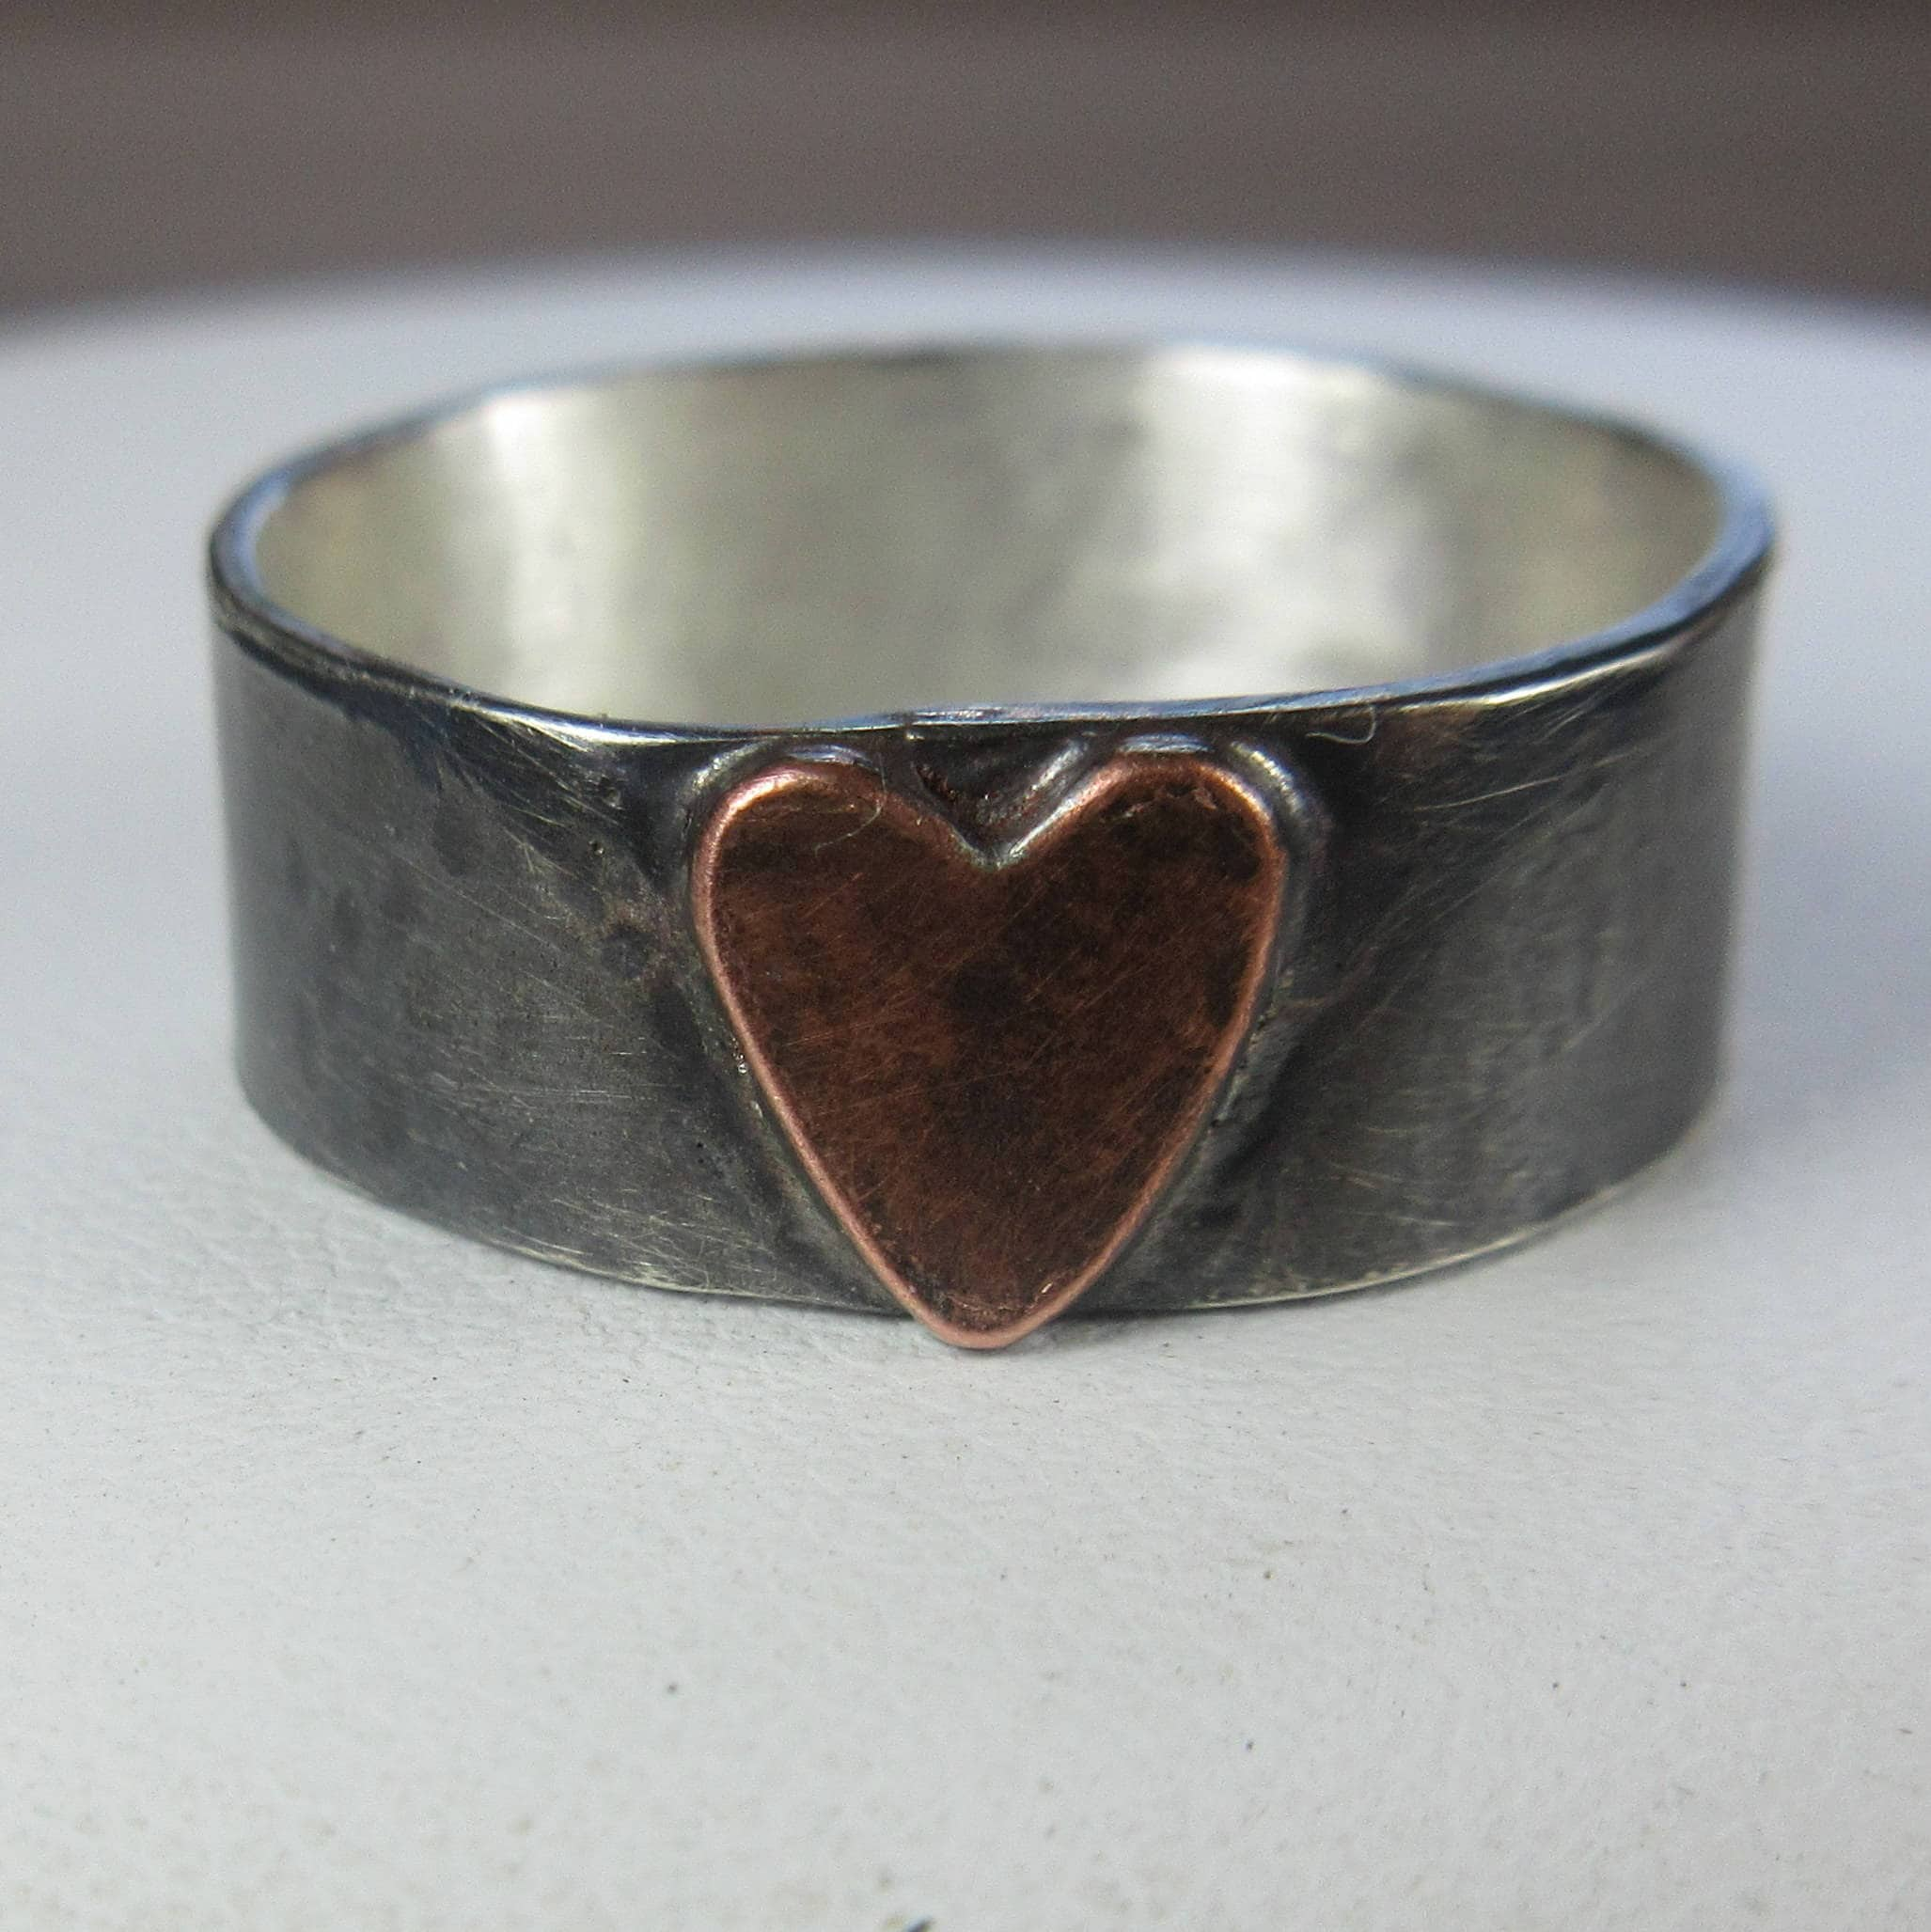 4ae68df15baec Heart Ring. Made To Order. Sterling Silver w Copper Heart. Wide Silver  Band. Oxidized/ Mixed Metal Rustic Heart. Gift For Her. Unisex